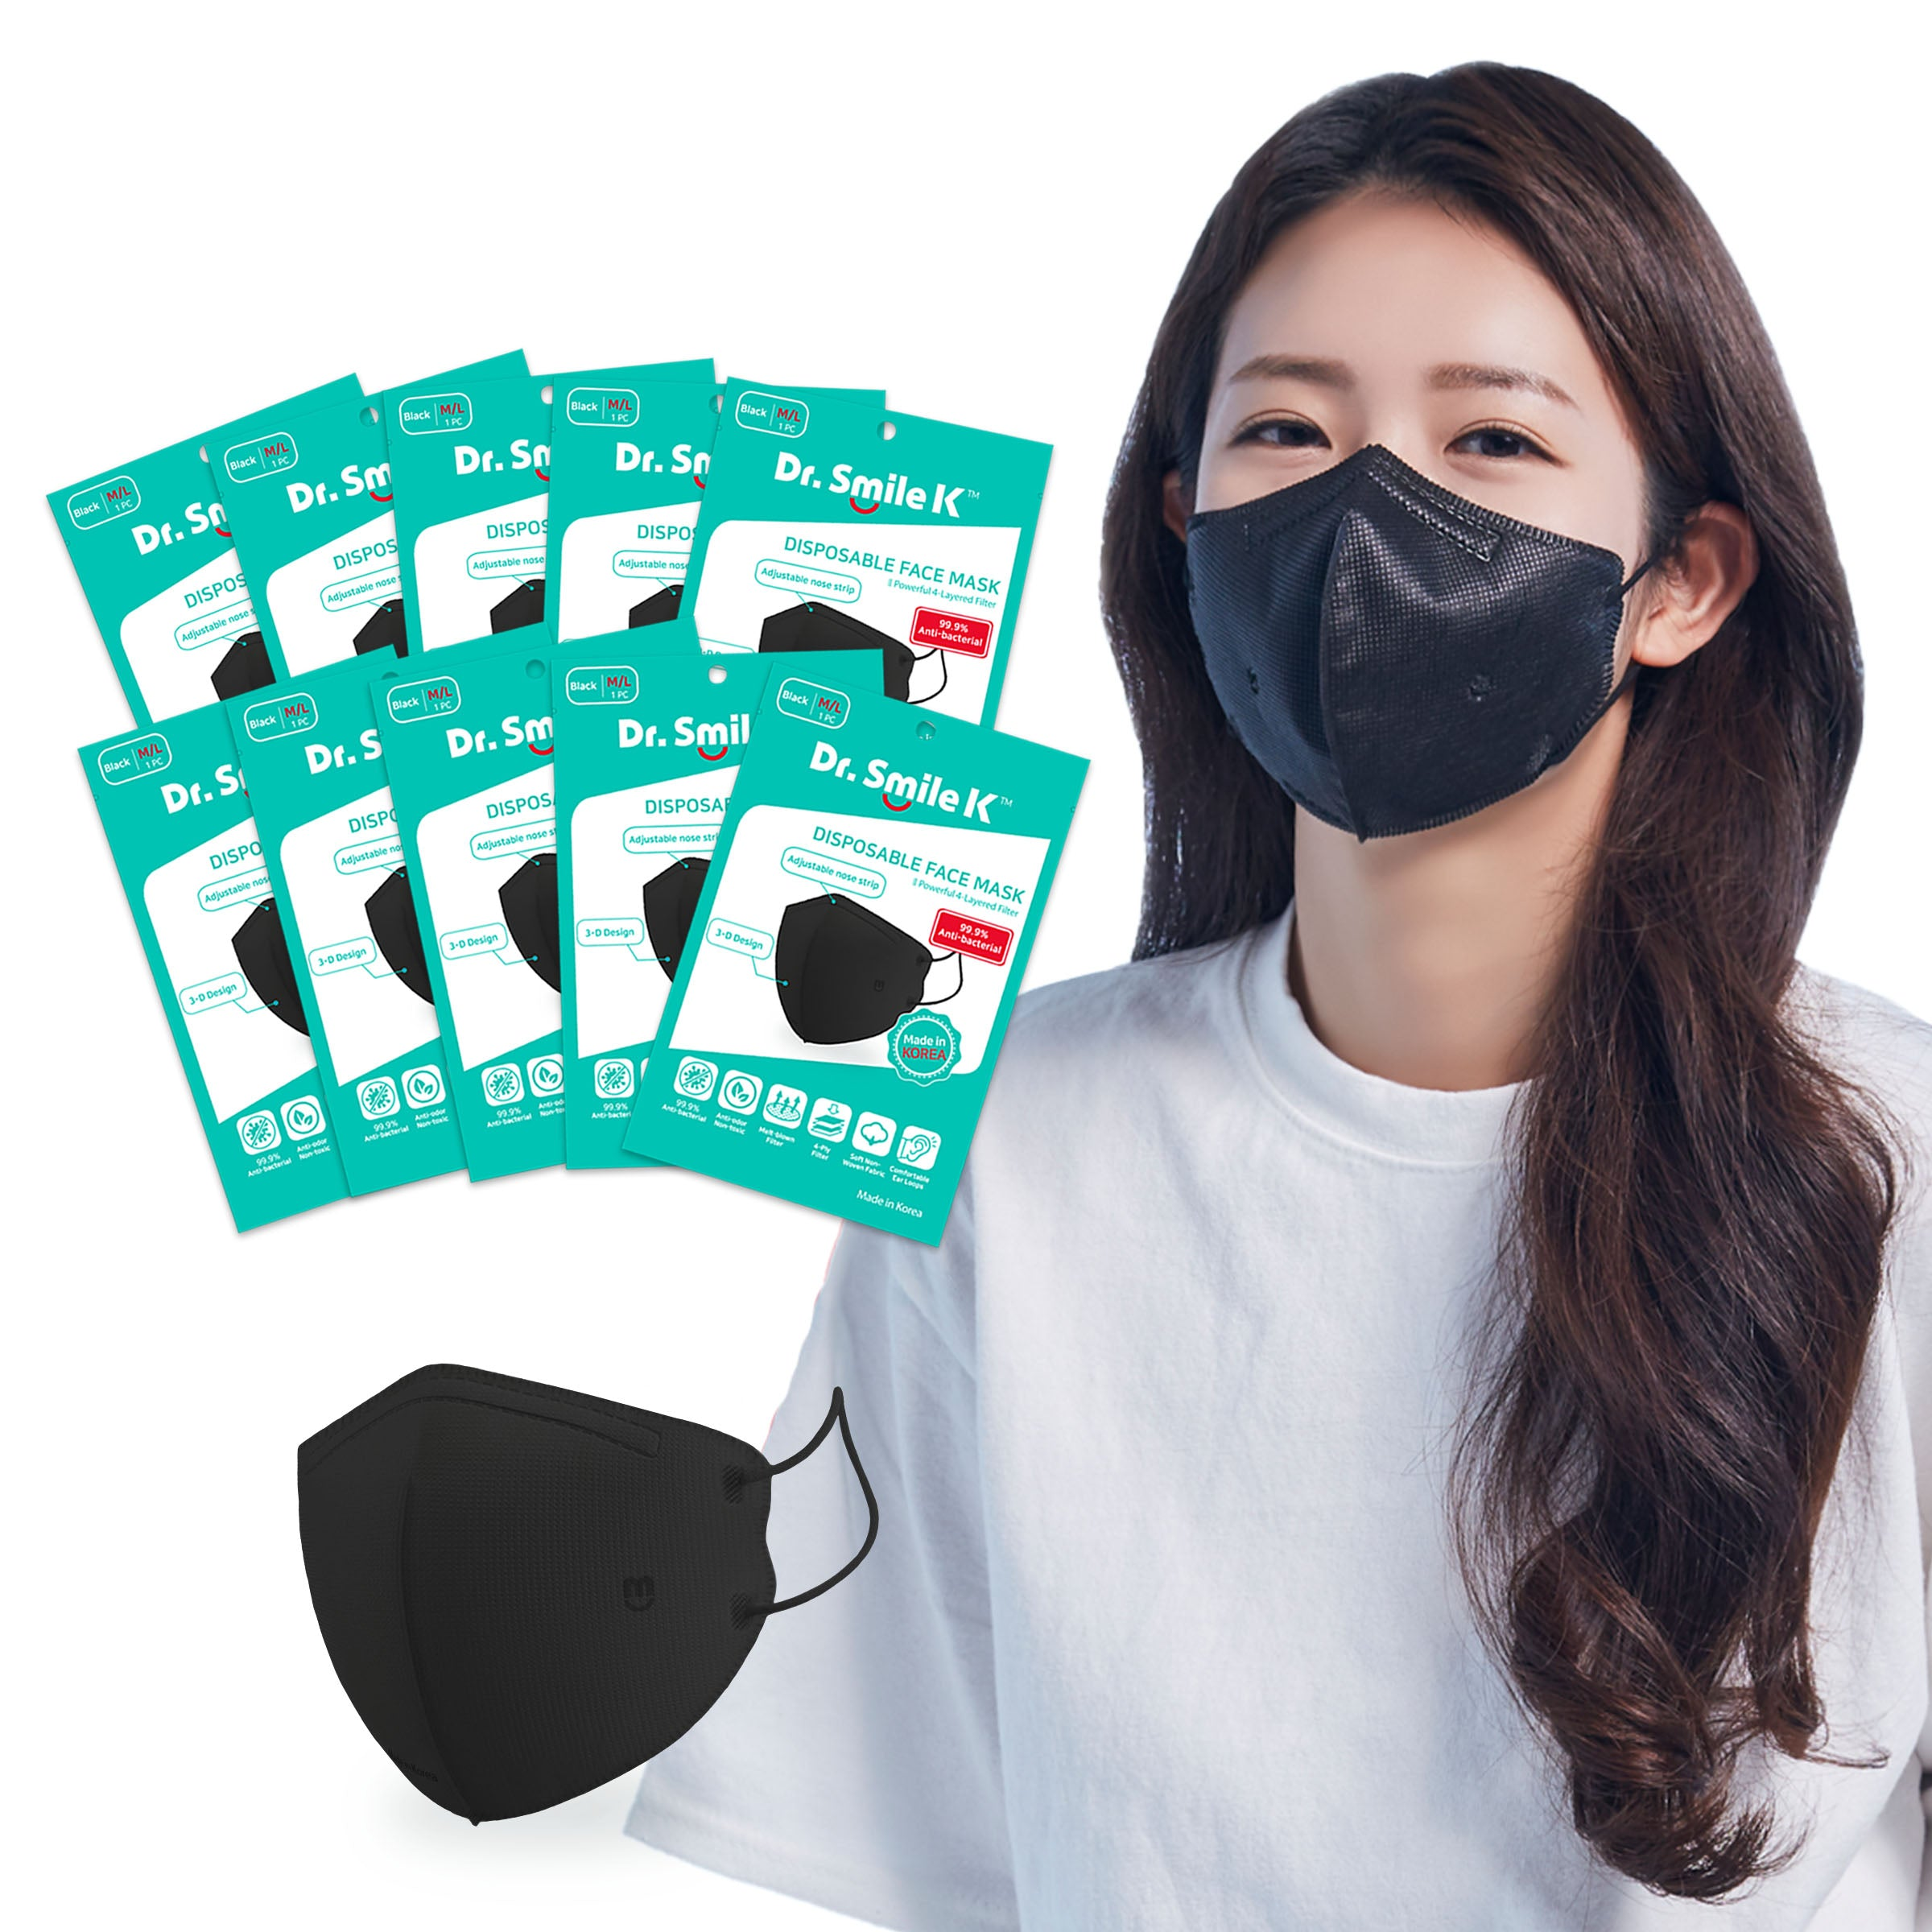 Aurora - Dr. Smile K - 10 or 20 Pack Black Disposable Face Masks - Sizes: S/M or M/L